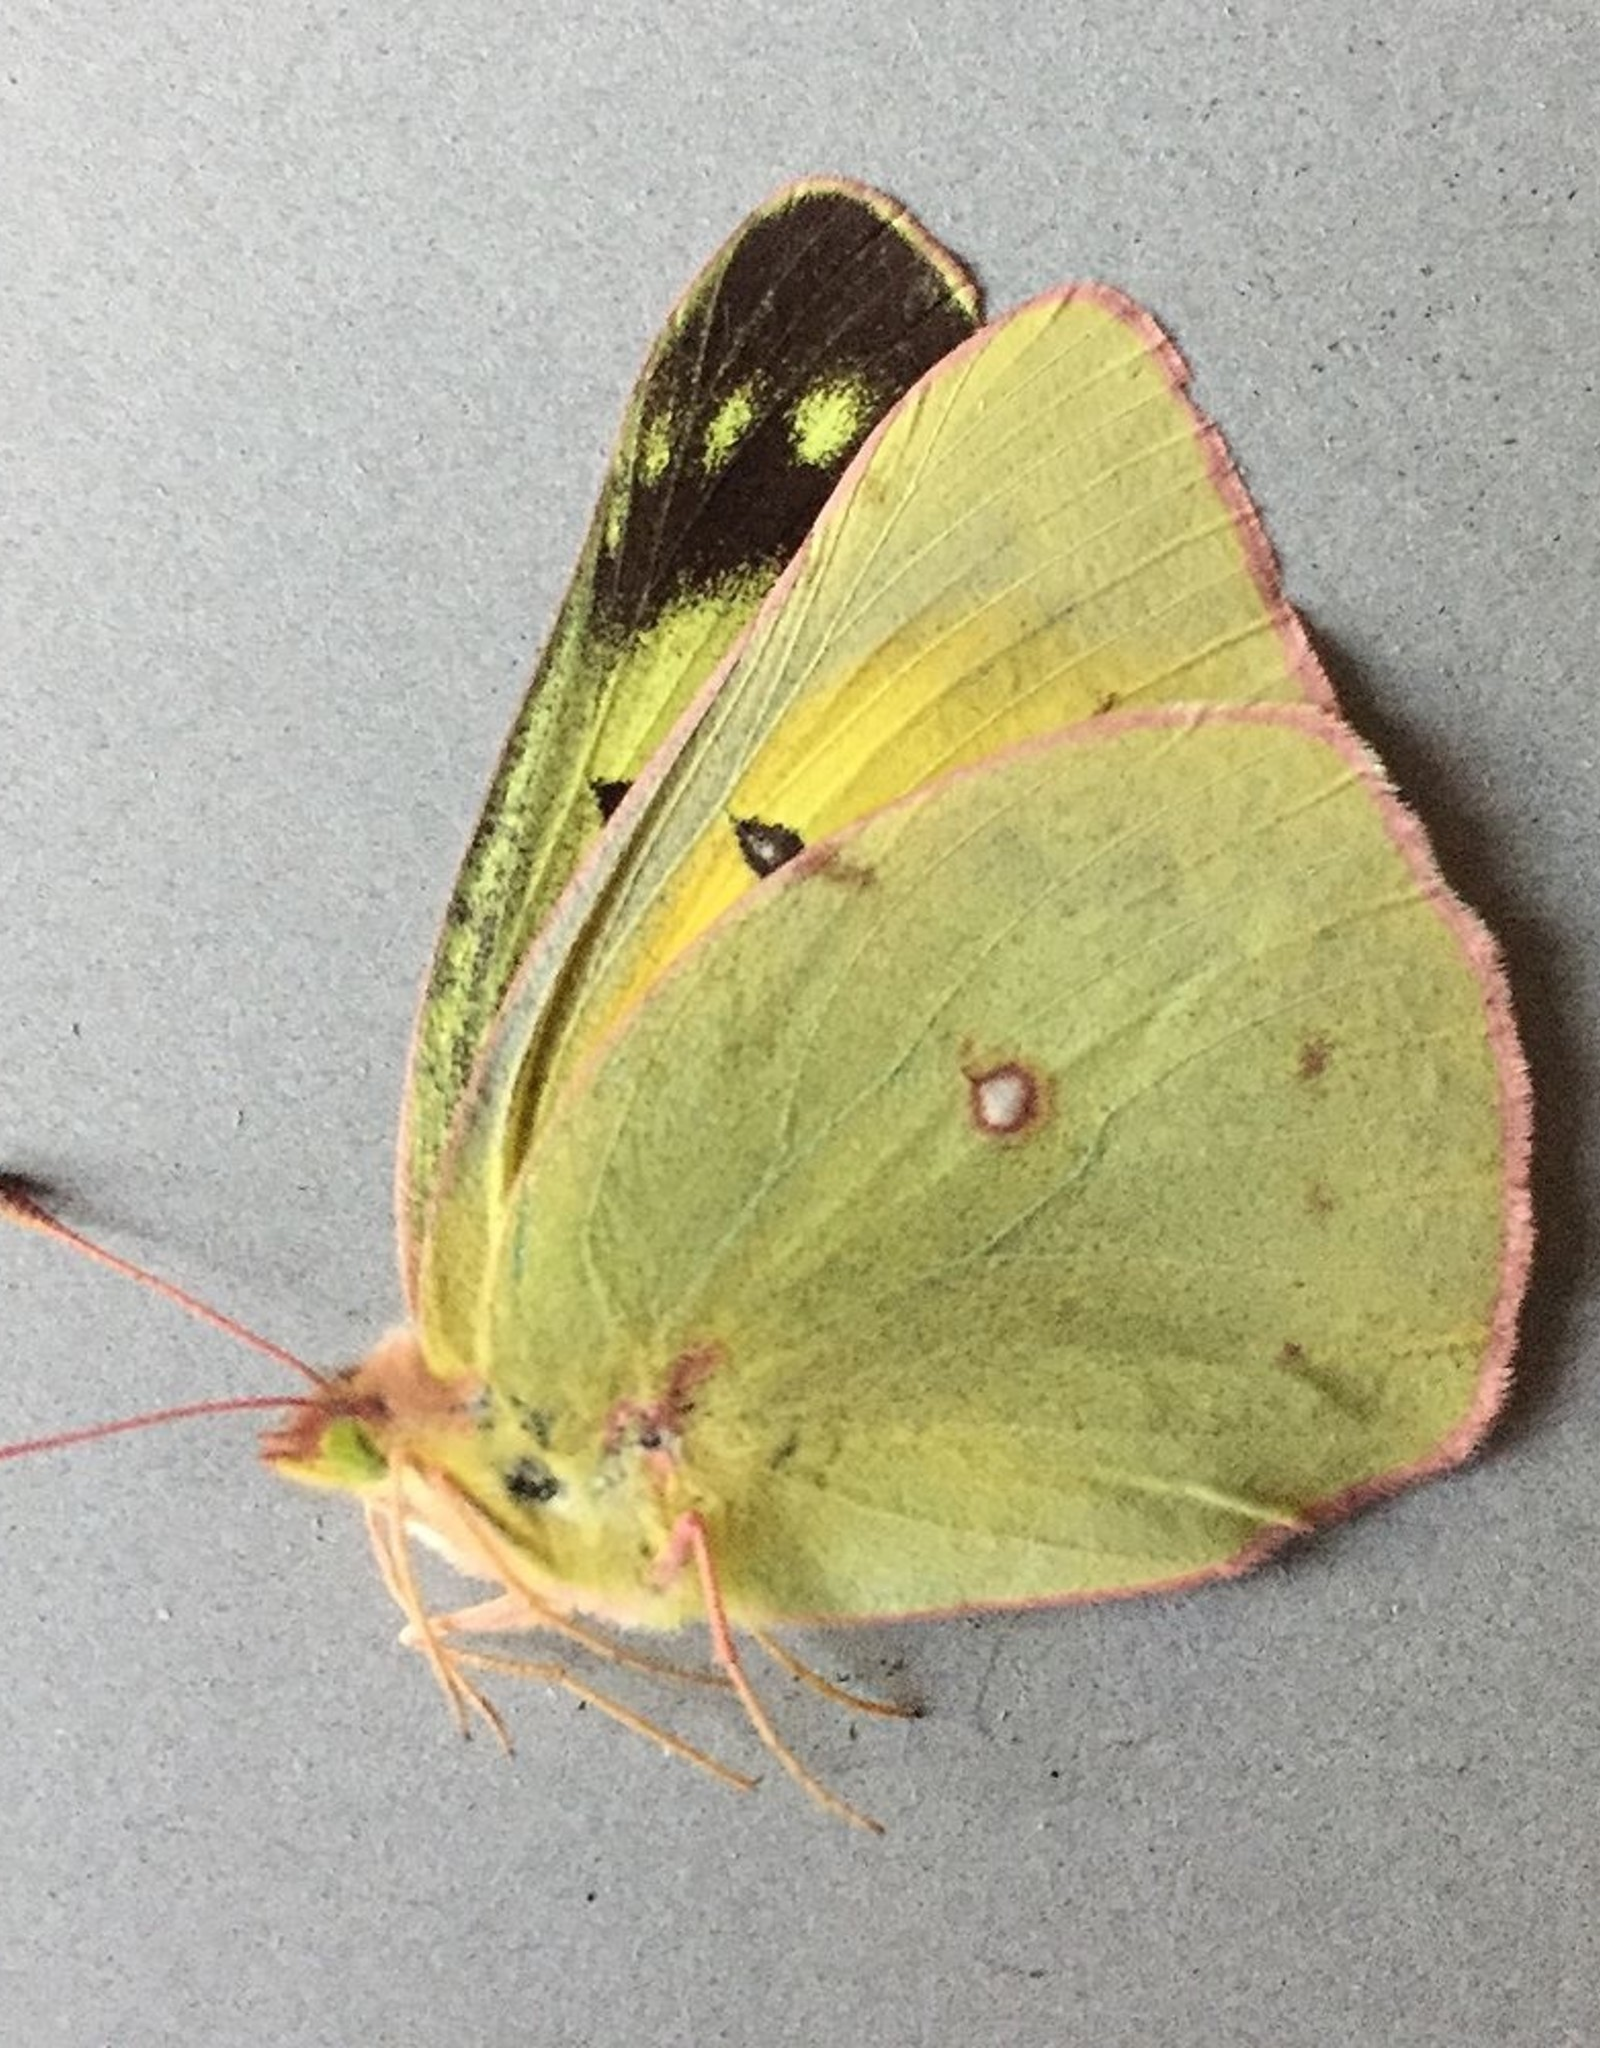 Colias philodice eriphyle F A1- Canada